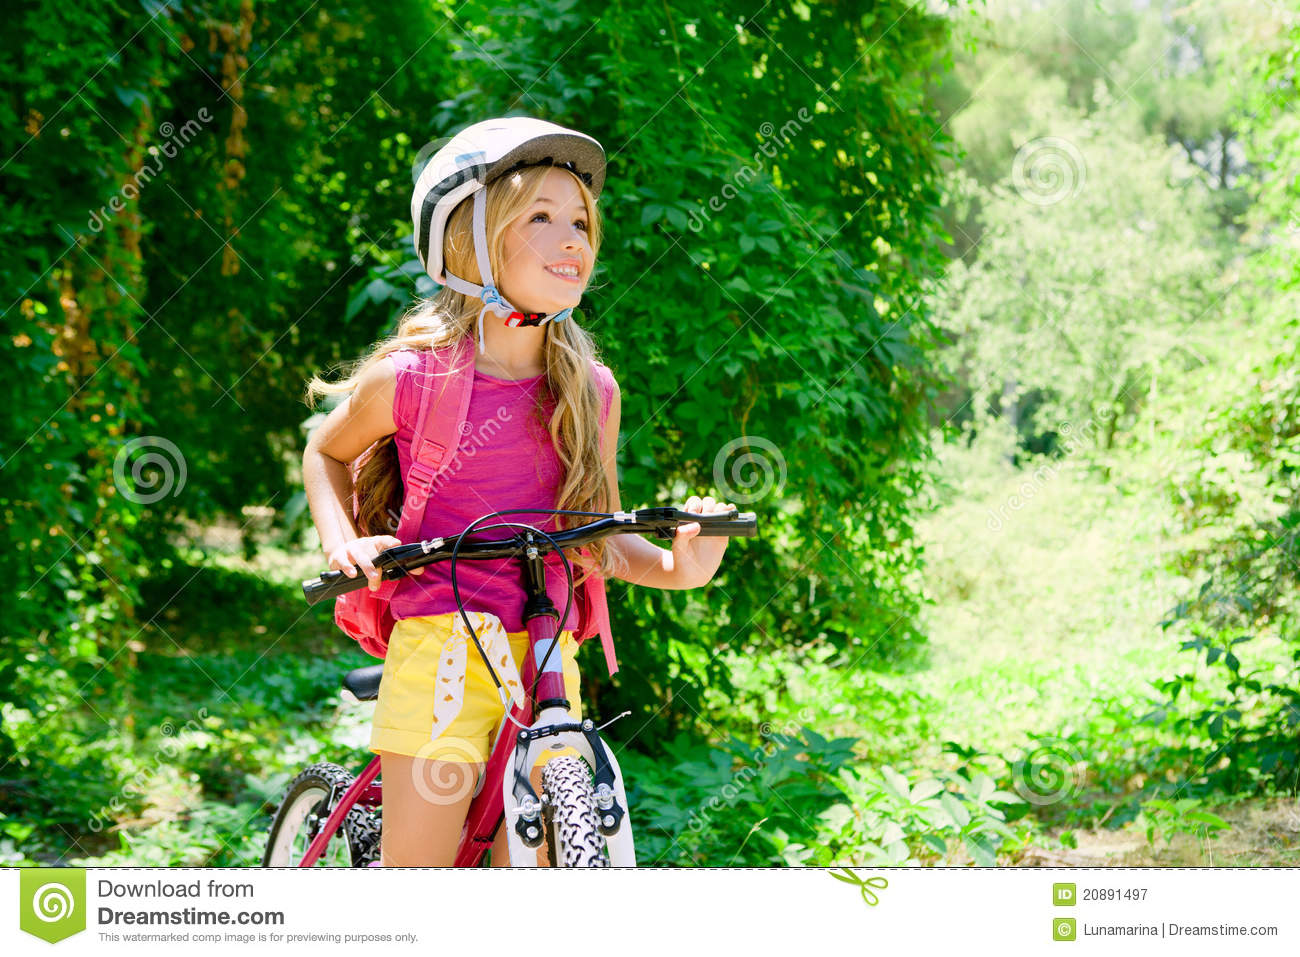 Girl On Bike Hd Wallpaper Children Girl Riding Bicycle Outdoor In Forest Royalty